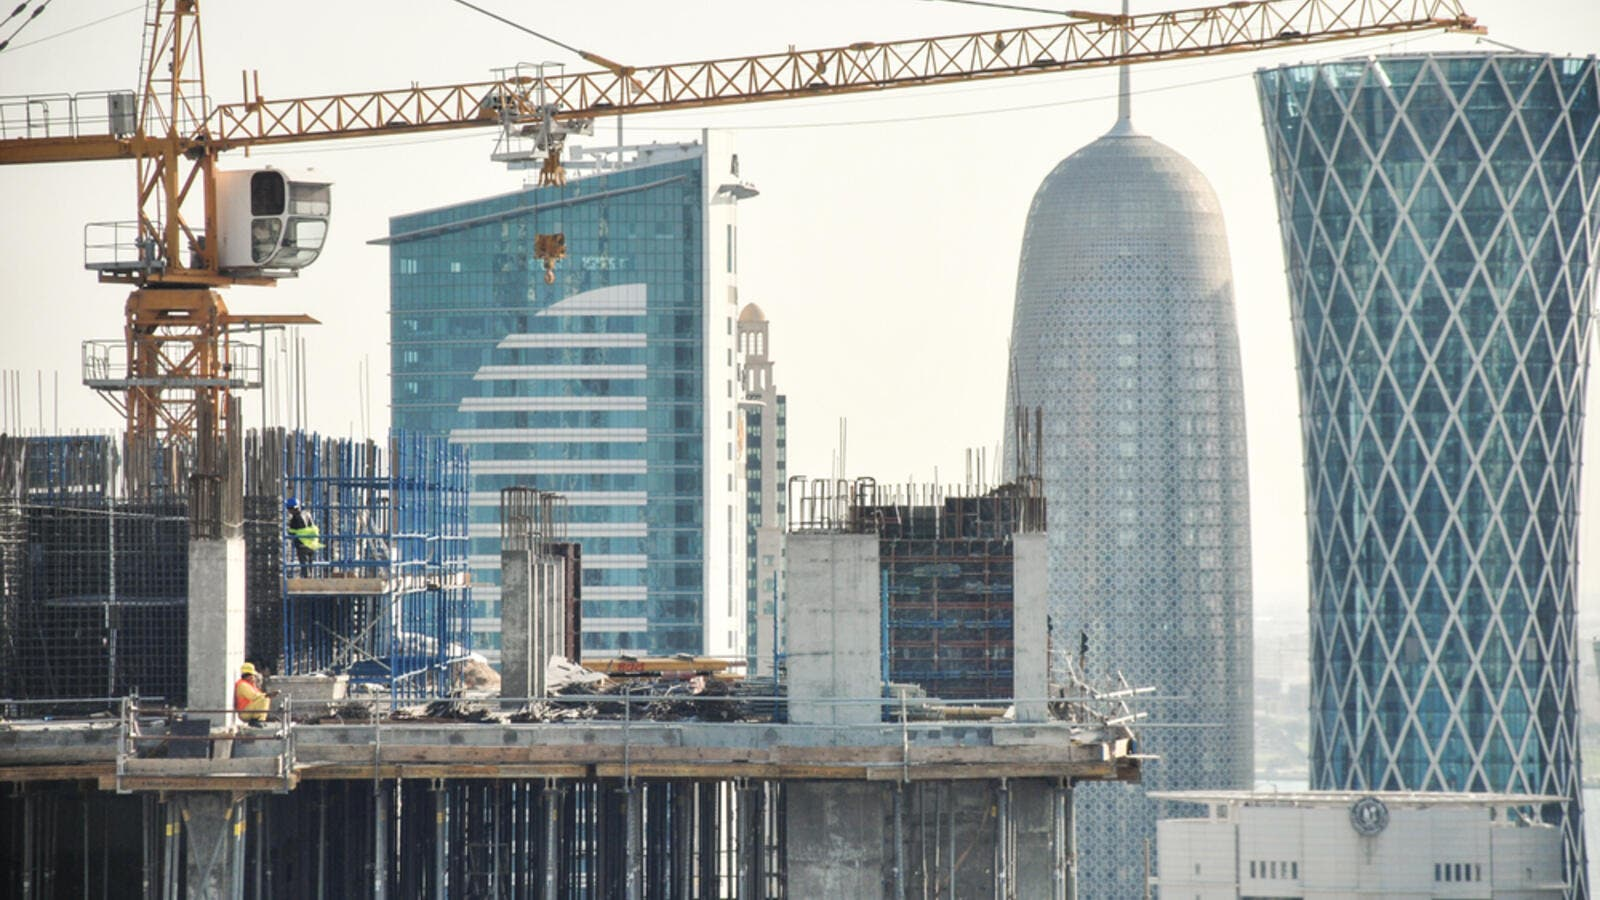 Qatar construction and infrastructure market is set to pick up in 2019 and accelerate in 2020-2021.